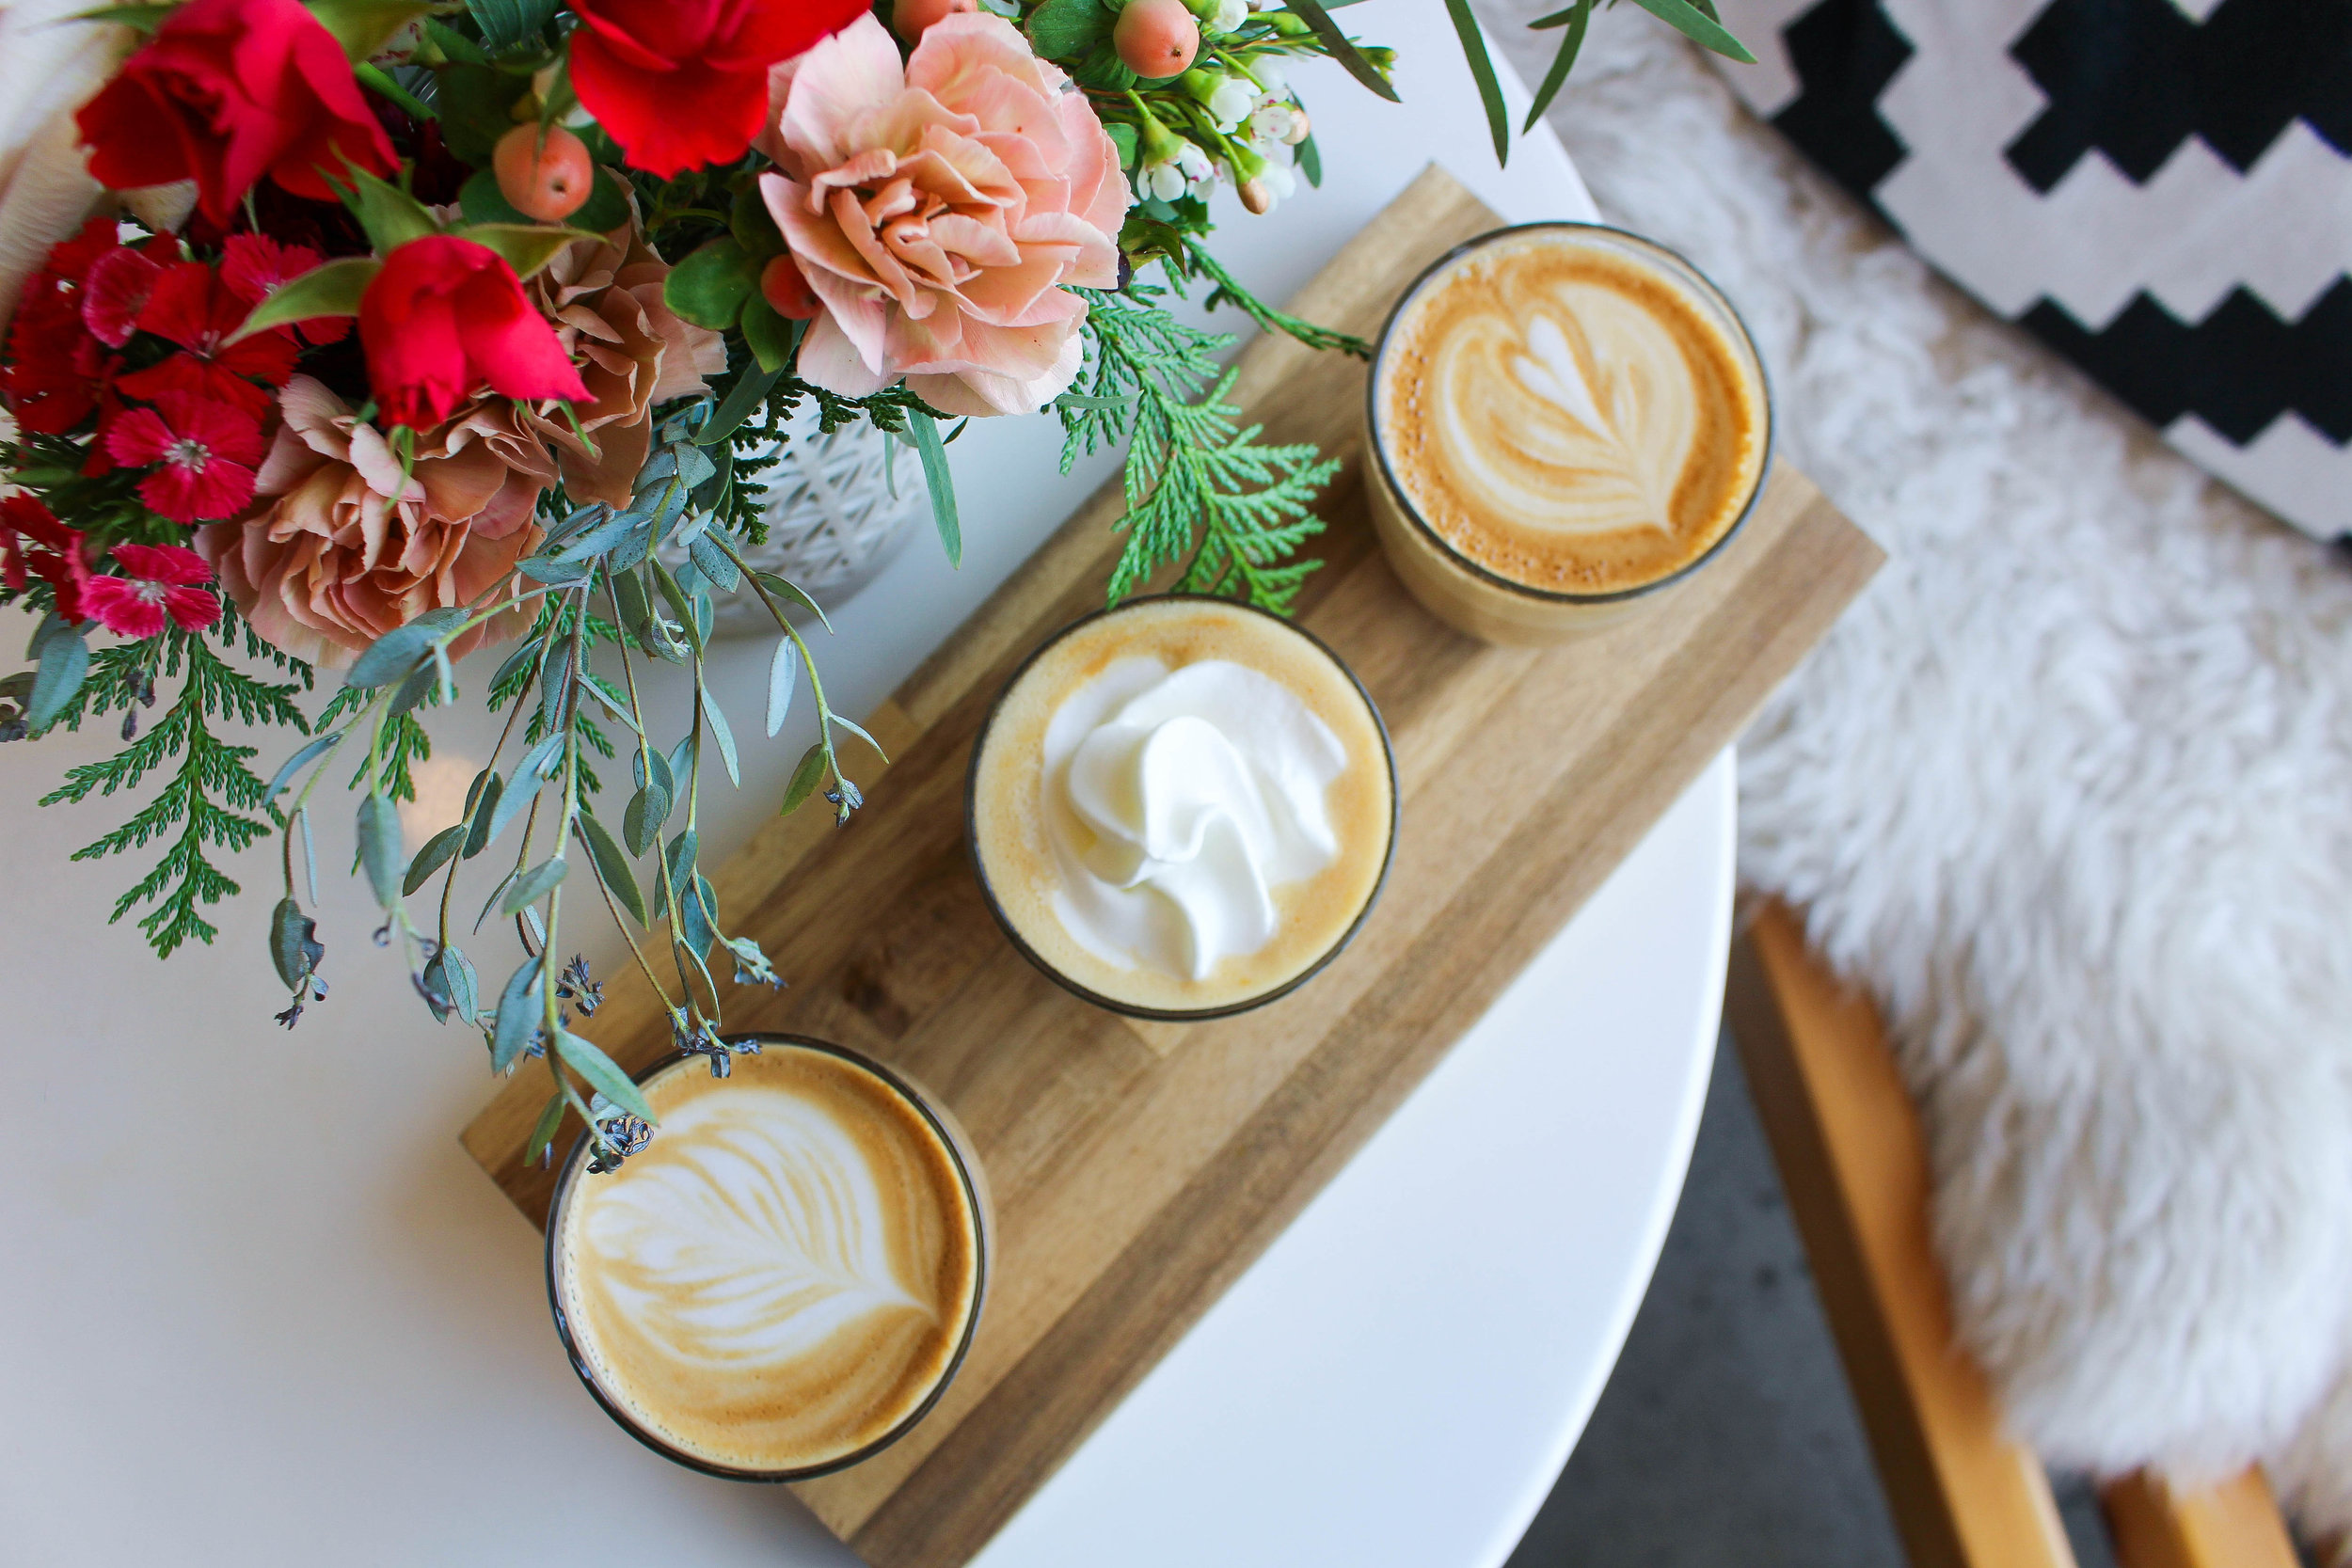 Seasonal Latte Flight ($10.50): Traditional Latte, Peppermint Mocha Latte, Pumpkin Spice Latte